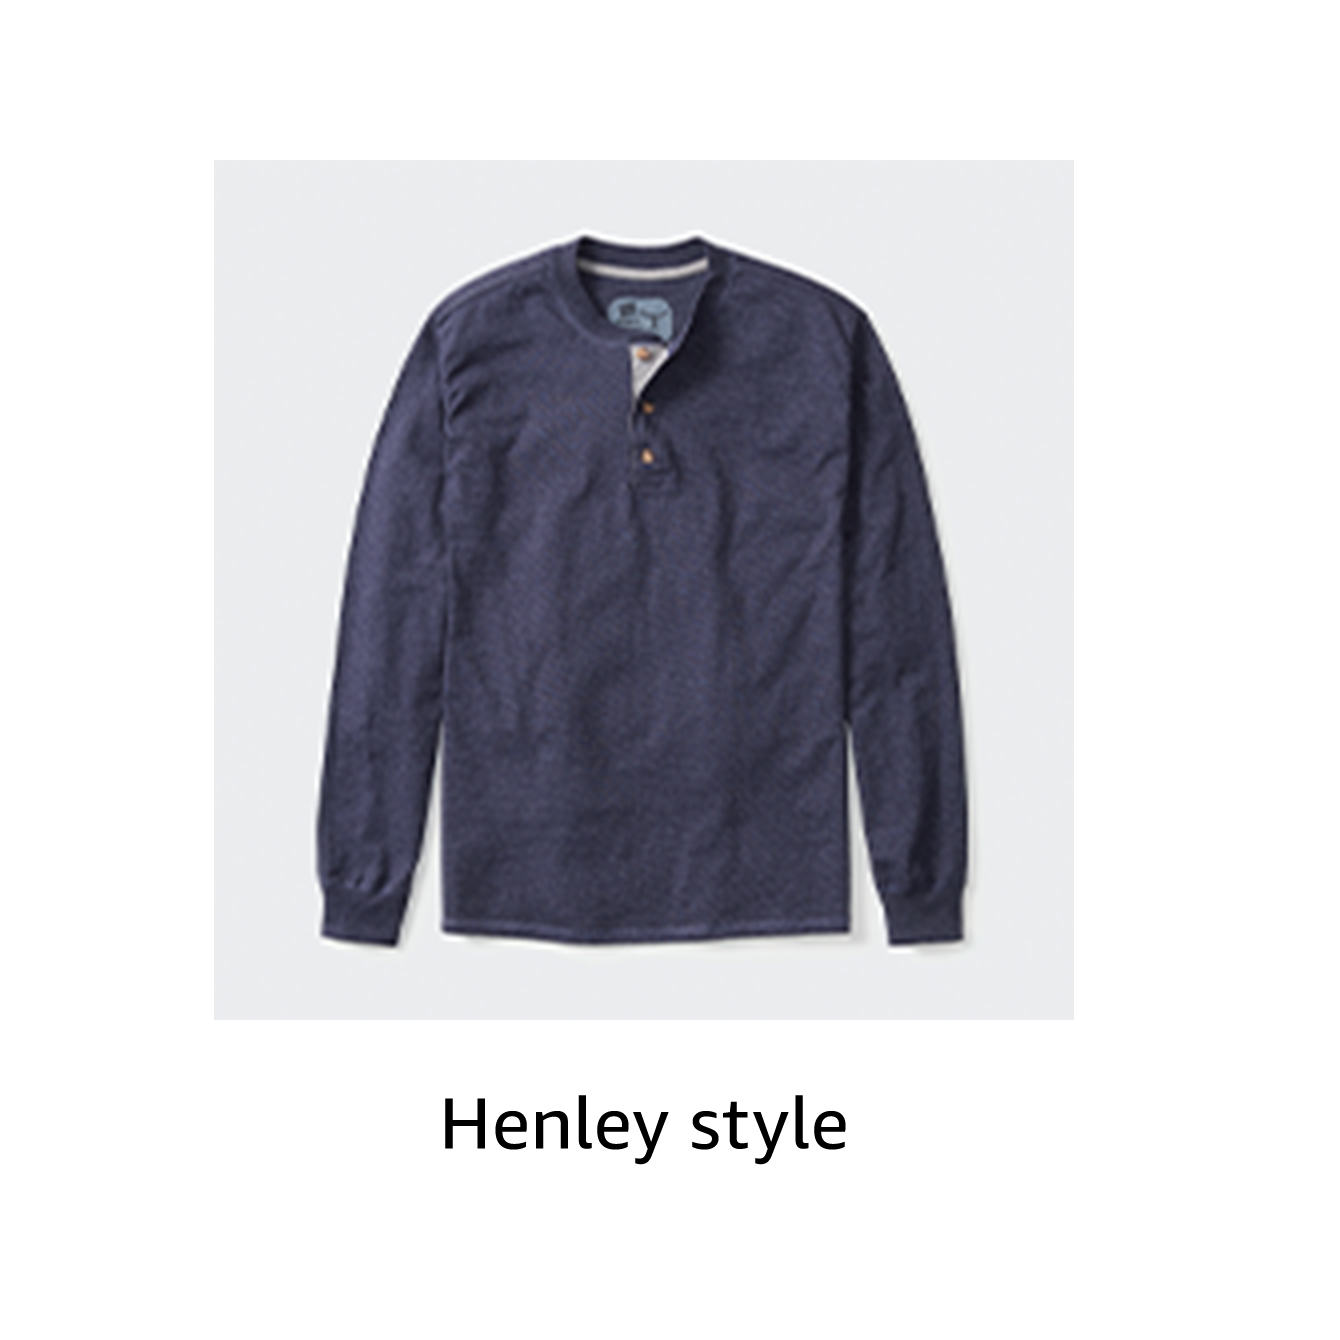 Henley style